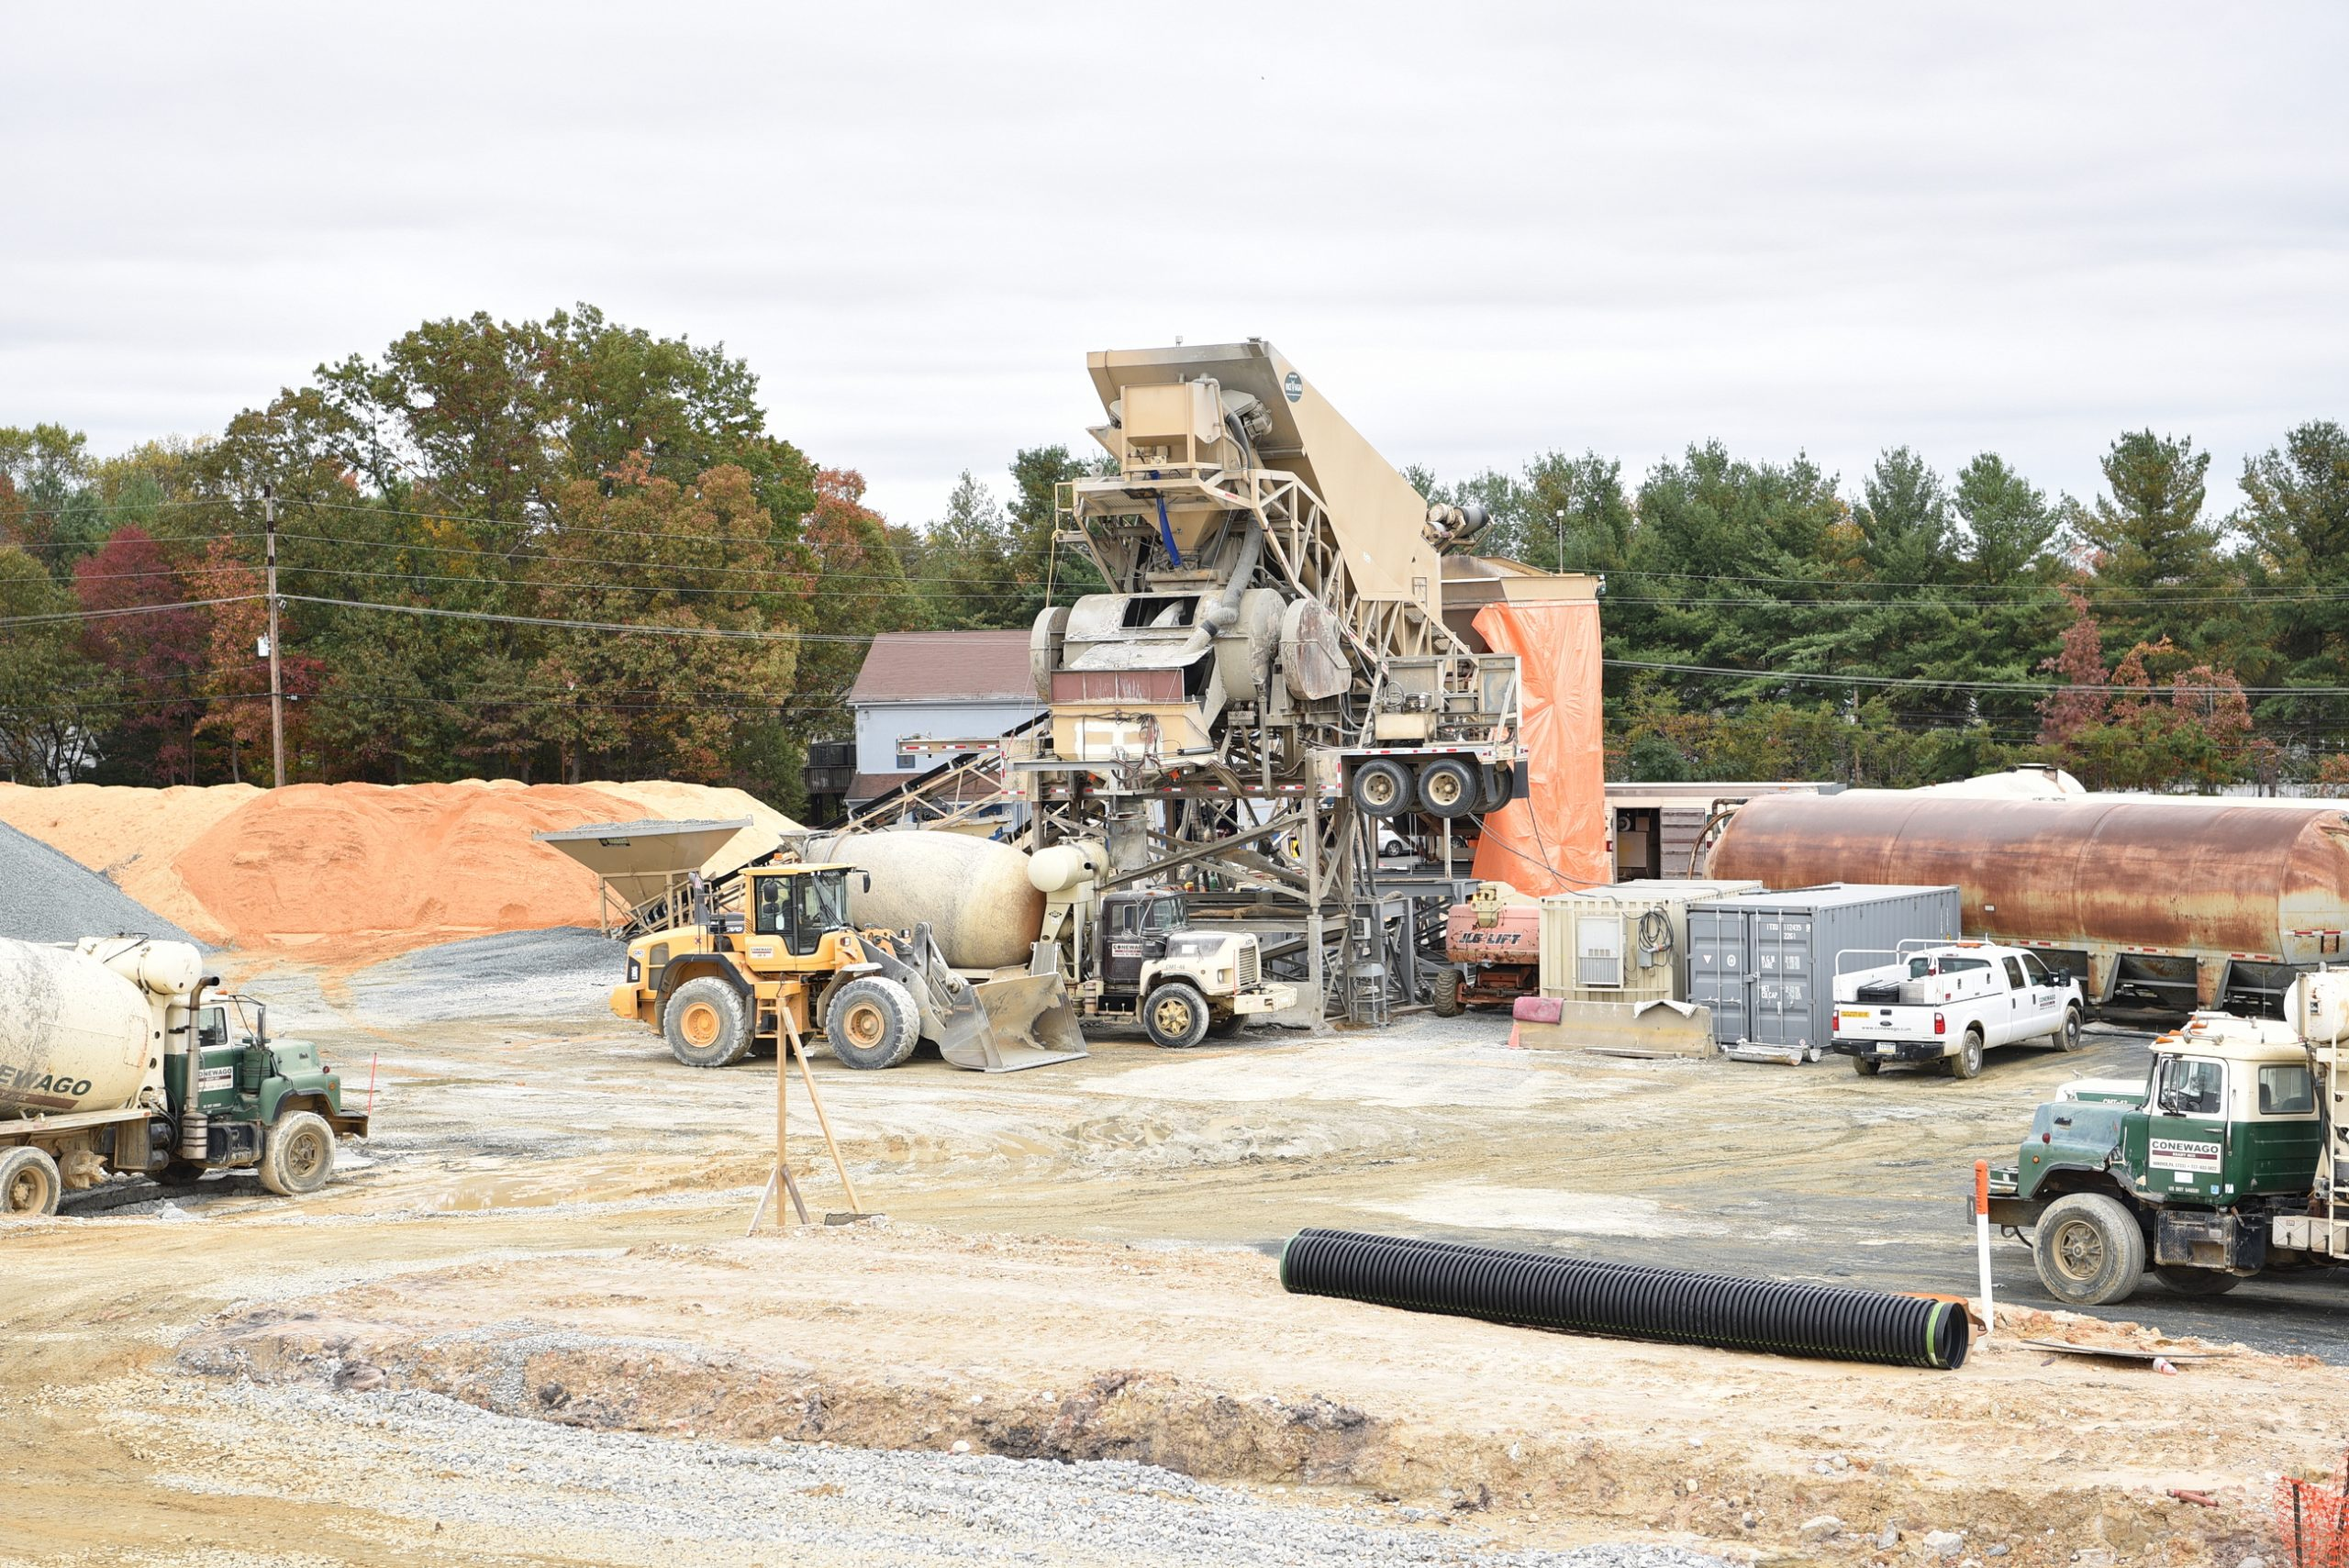 Conewago Manufacturing Steel Project - NorthEast Commons -Conewago Manufacturing Steel Project - NorthEast Commons